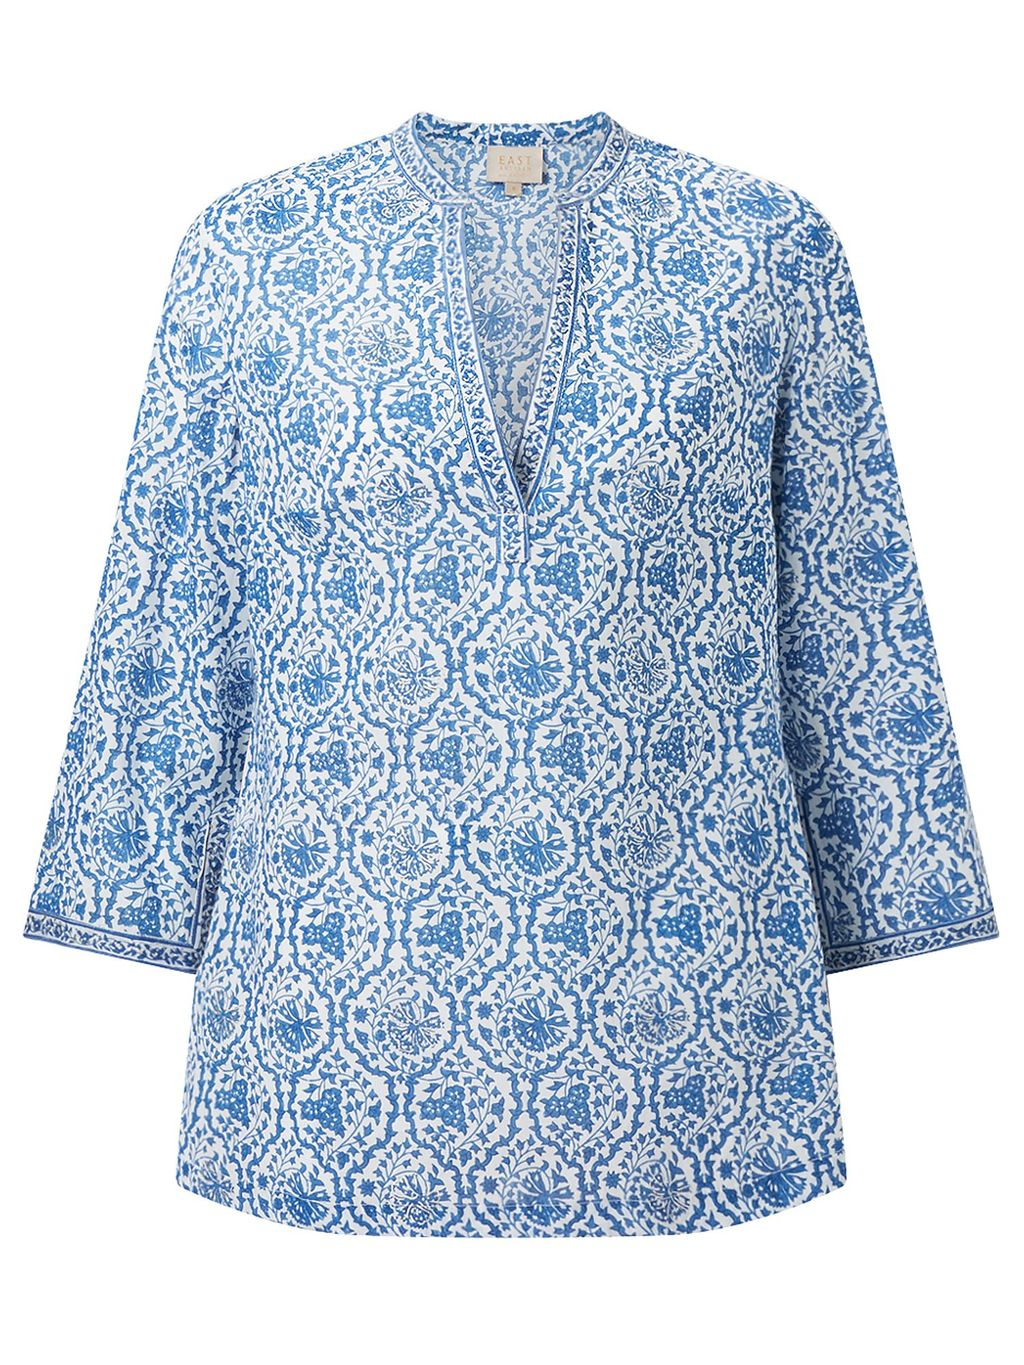 Sahara Print Blouse, White - neckline: v-neck; style: blouse; secondary colour: white; predominant colour: pale blue; occasions: casual, holiday; length: standard; fibres: cotton - 100%; fit: body skimming; sleeve length: 3/4 length; sleeve style: standard; texture group: cotton feel fabrics; pattern type: fabric; pattern: patterned/print; multicoloured: multicoloured; season: s/s 2016; wardrobe: highlight